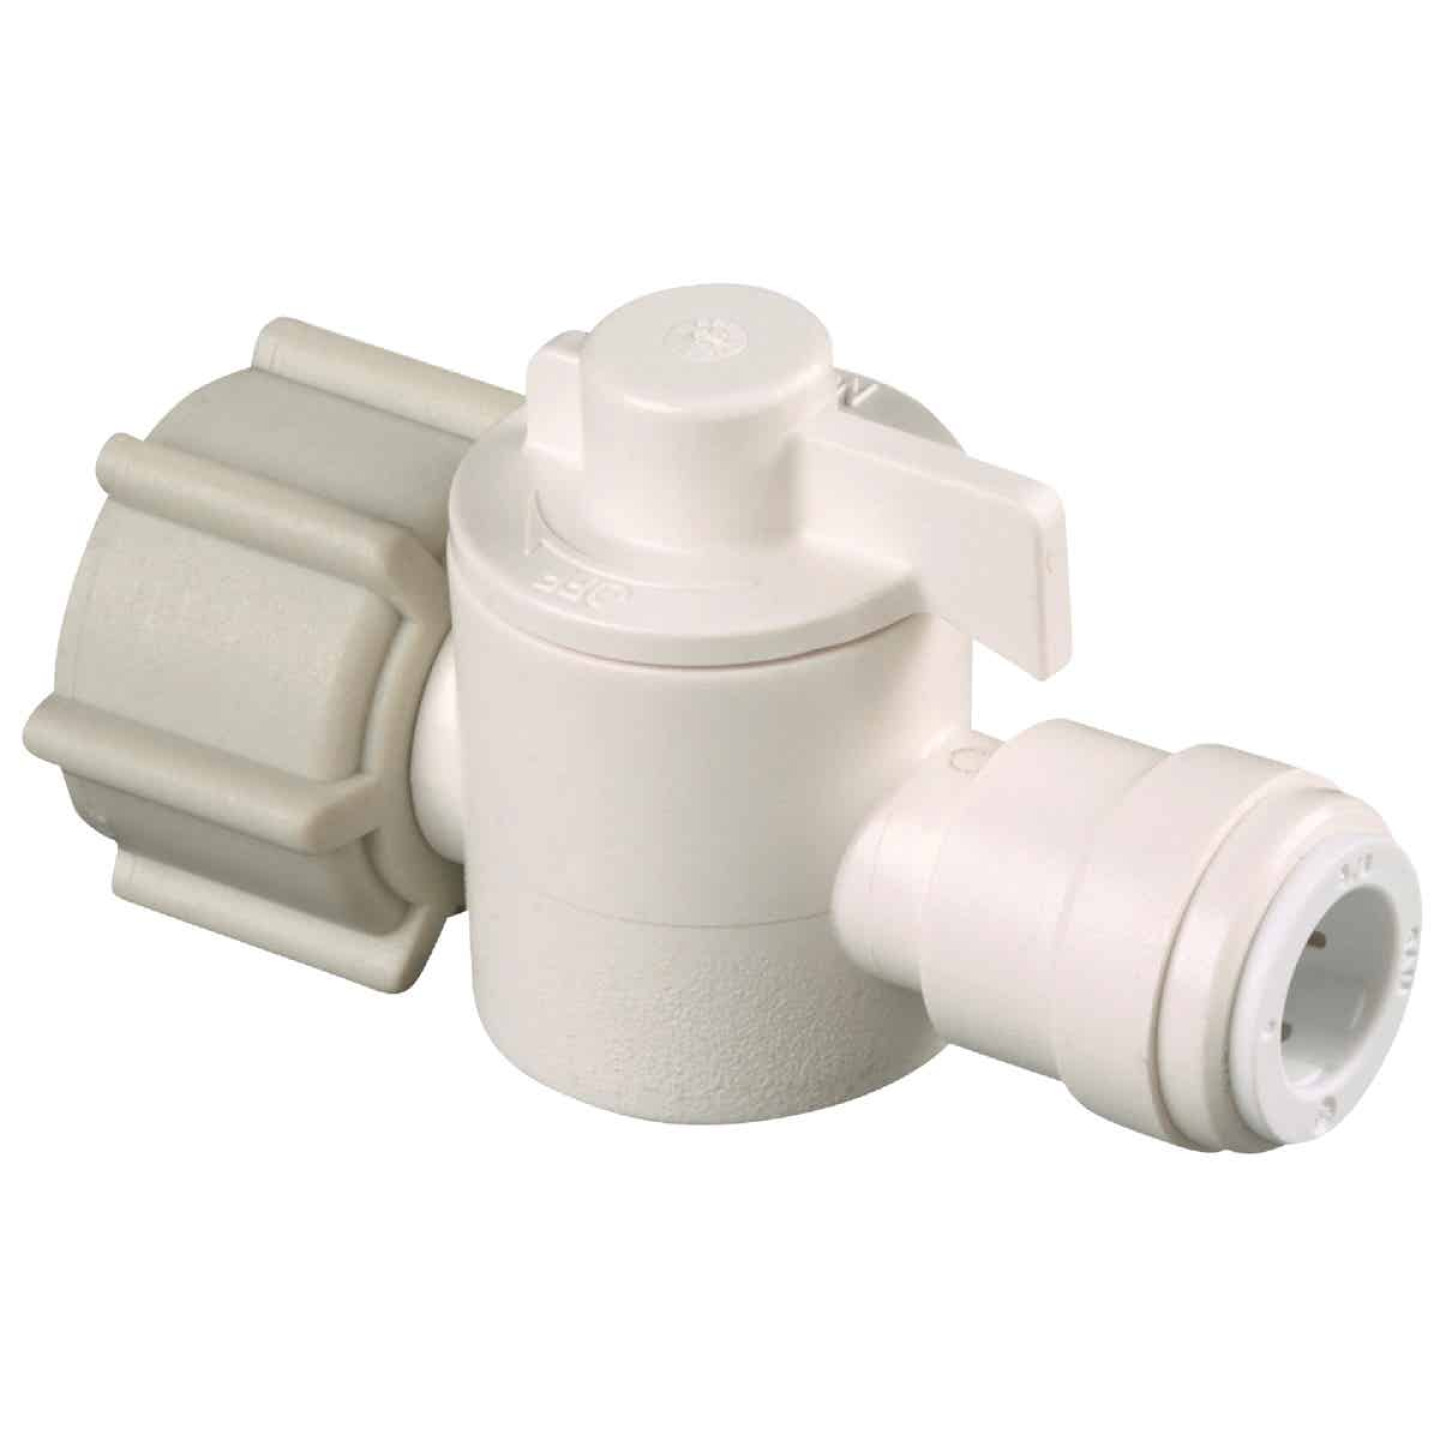 Watts 1/2 In. FPT X 1/4 In. CTS Plastic Push Valve Image 1